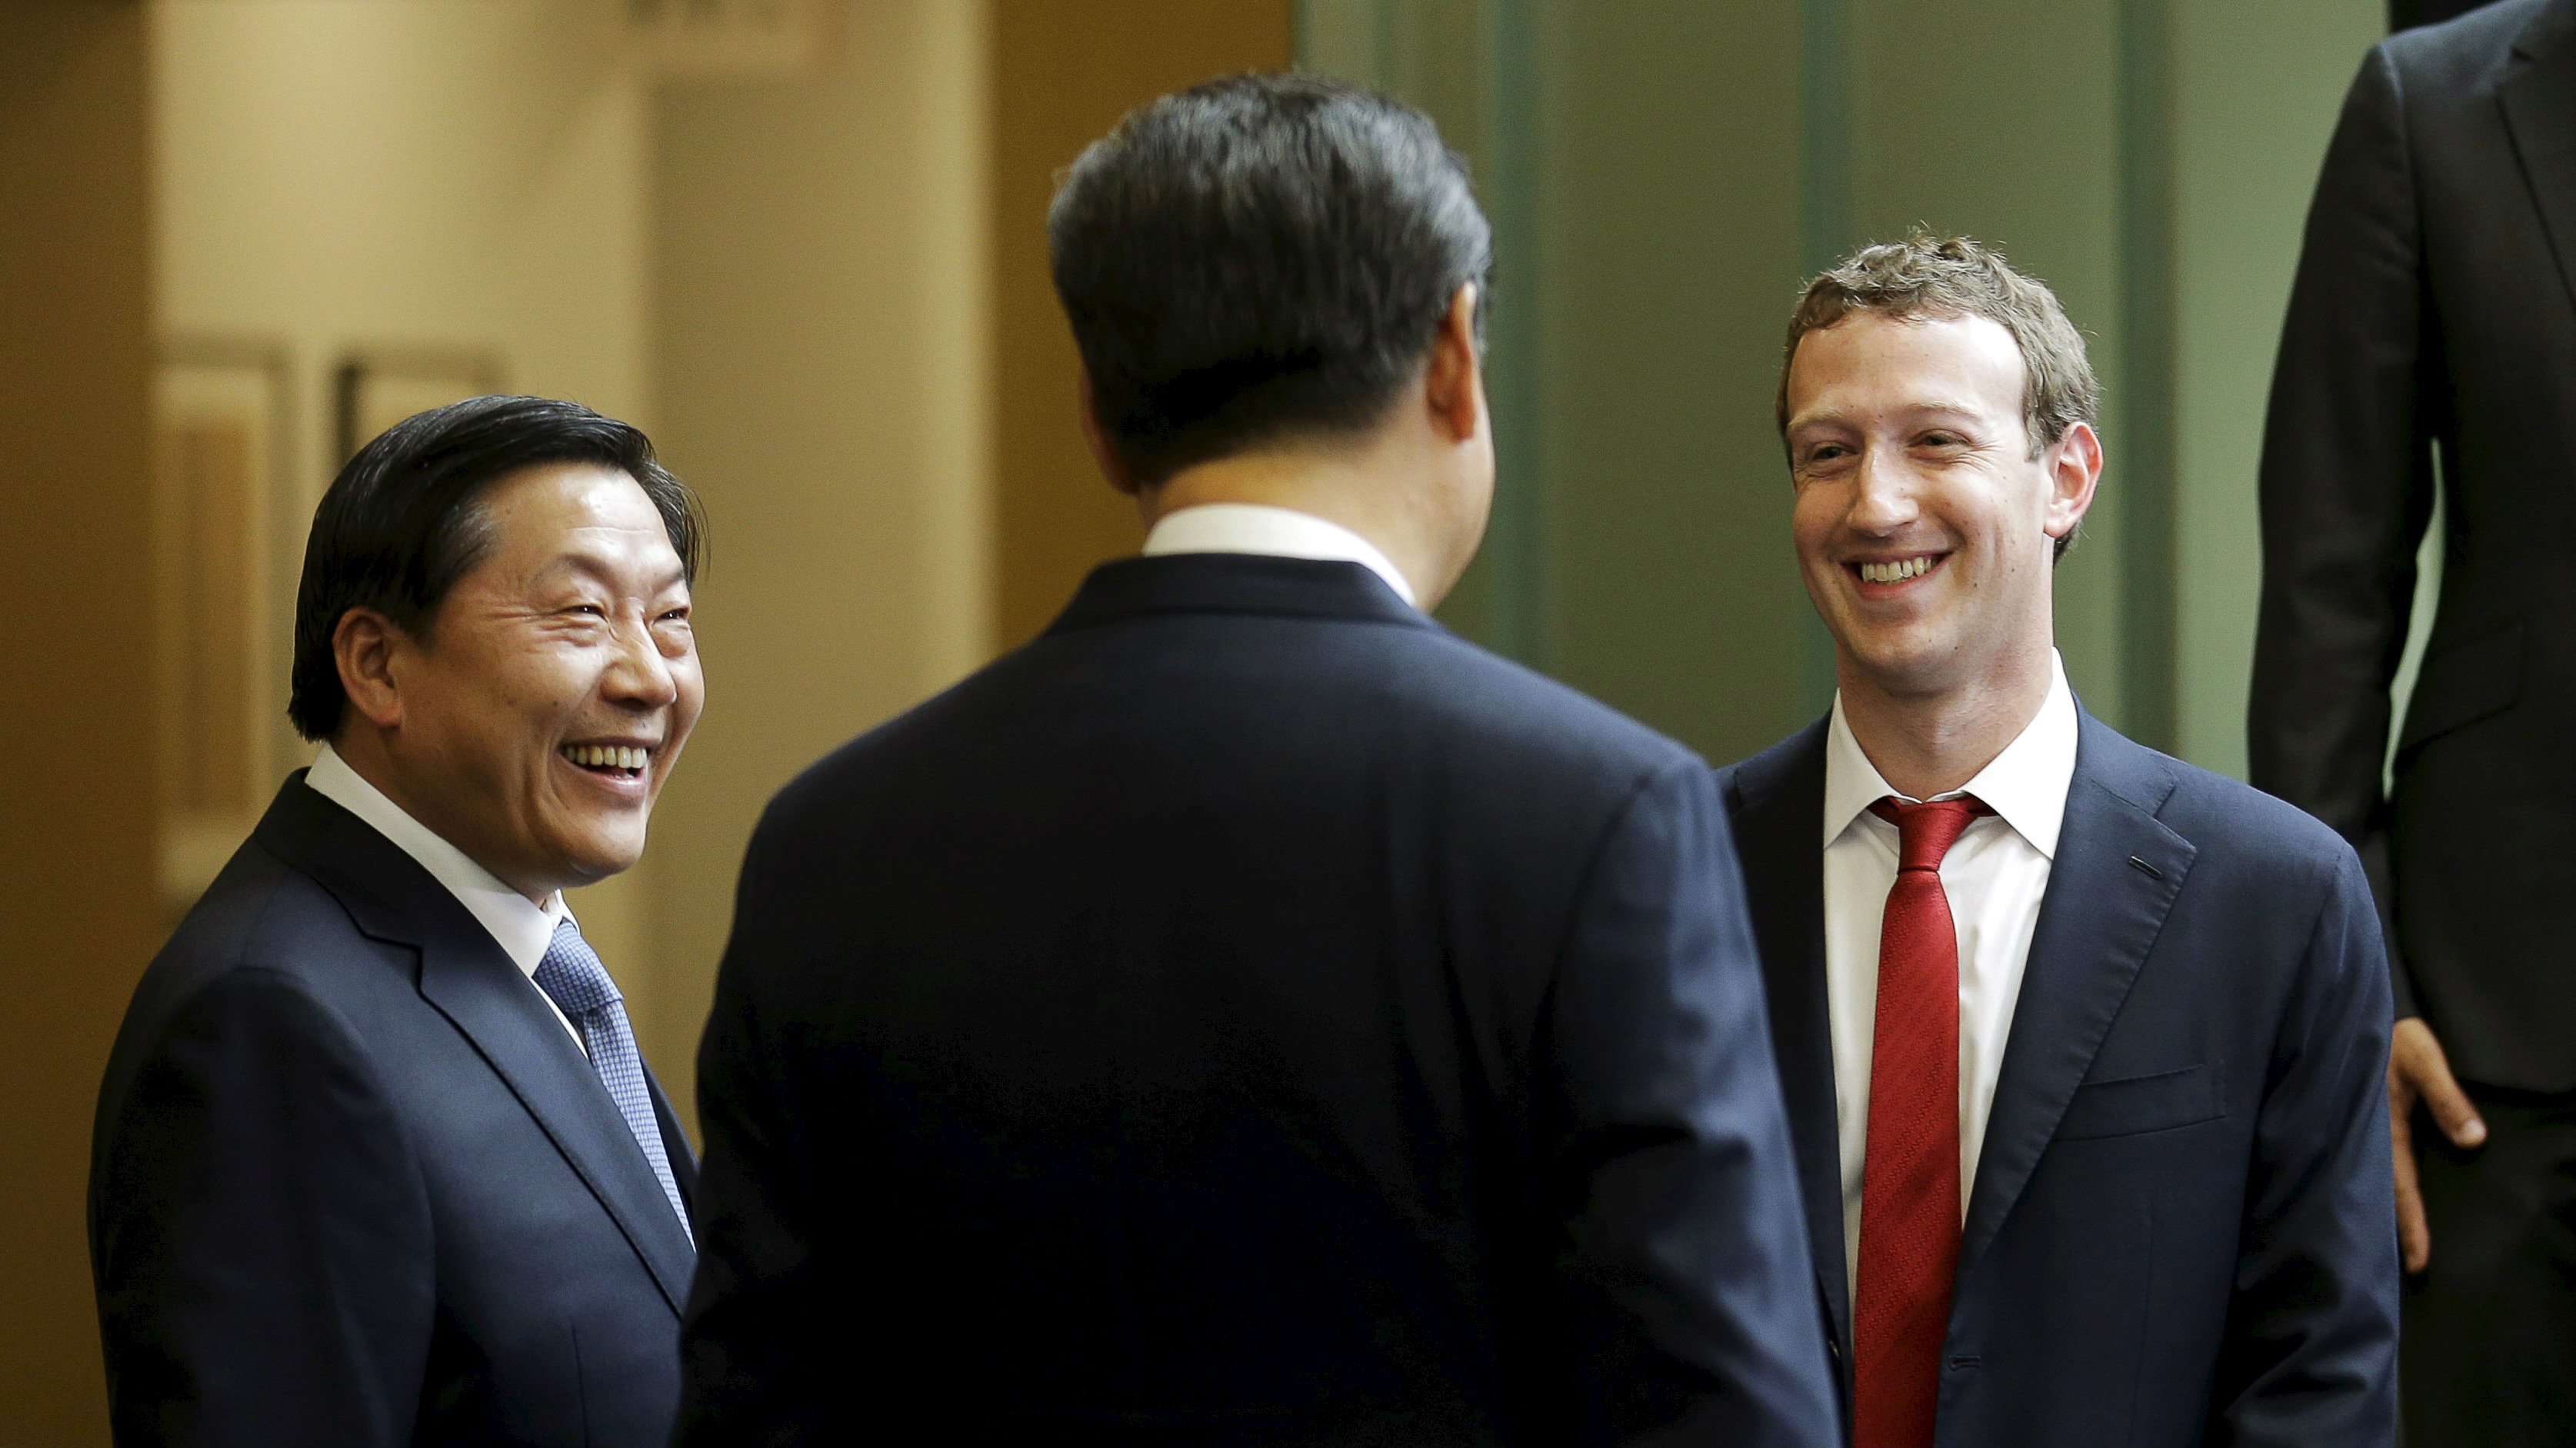 Chinese President Xi Jinping (C) talks with Facebook Chief Executive Mark Zuckerberg (R) as China's top Internet regulator Lu Wei (L) looks on, during a gathering of CEOs and other executives at Microsoft's main campus in Redmond, Washington